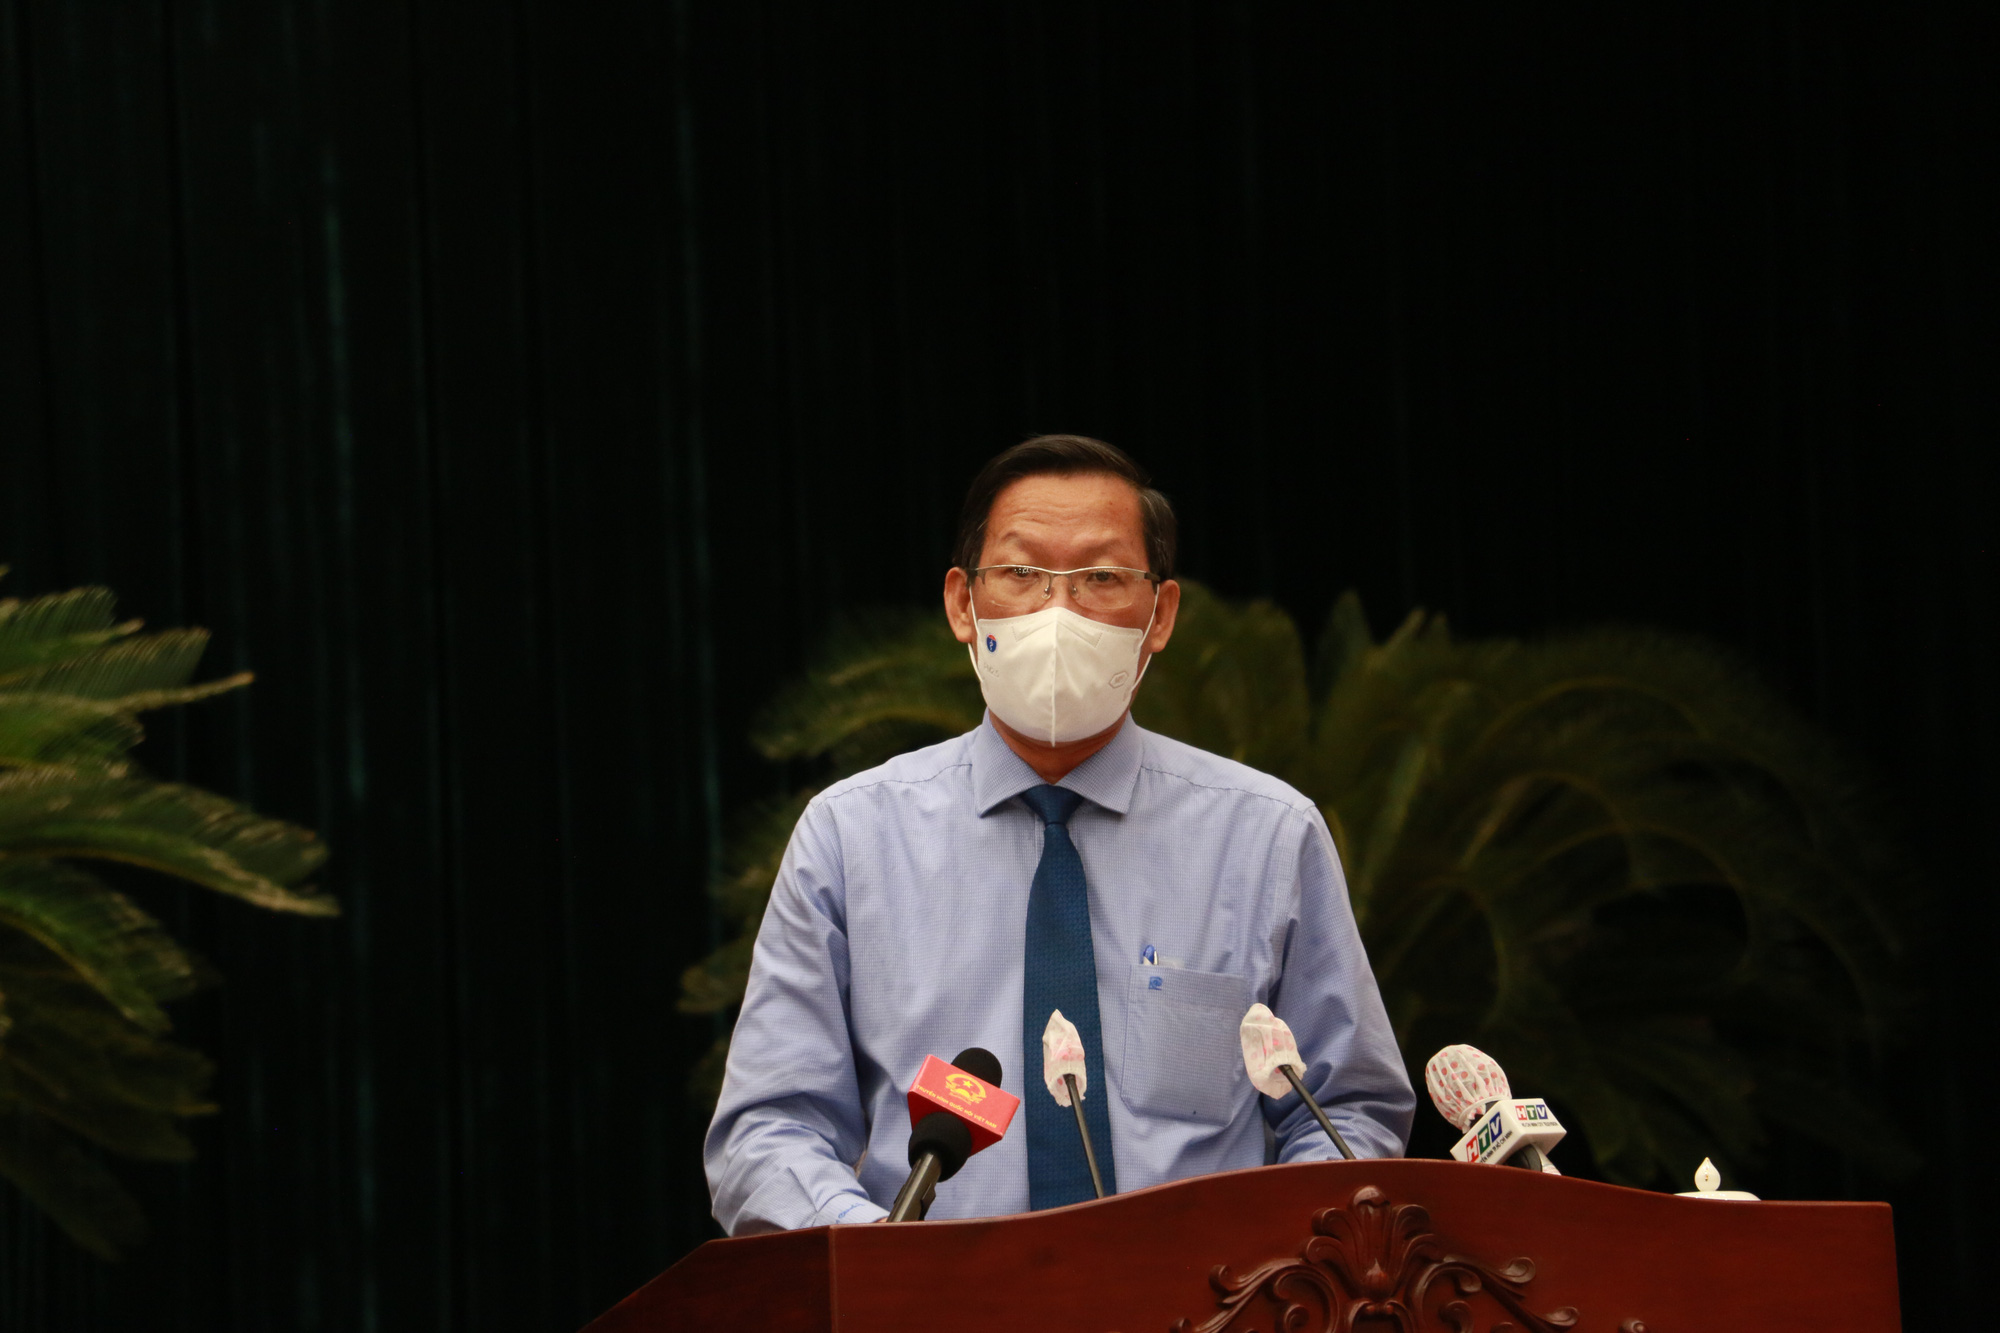 Chairman of the Ho Chi Minh City People's Committee Phan Van Mai. Photo: Thao Le / Tuoi Tre